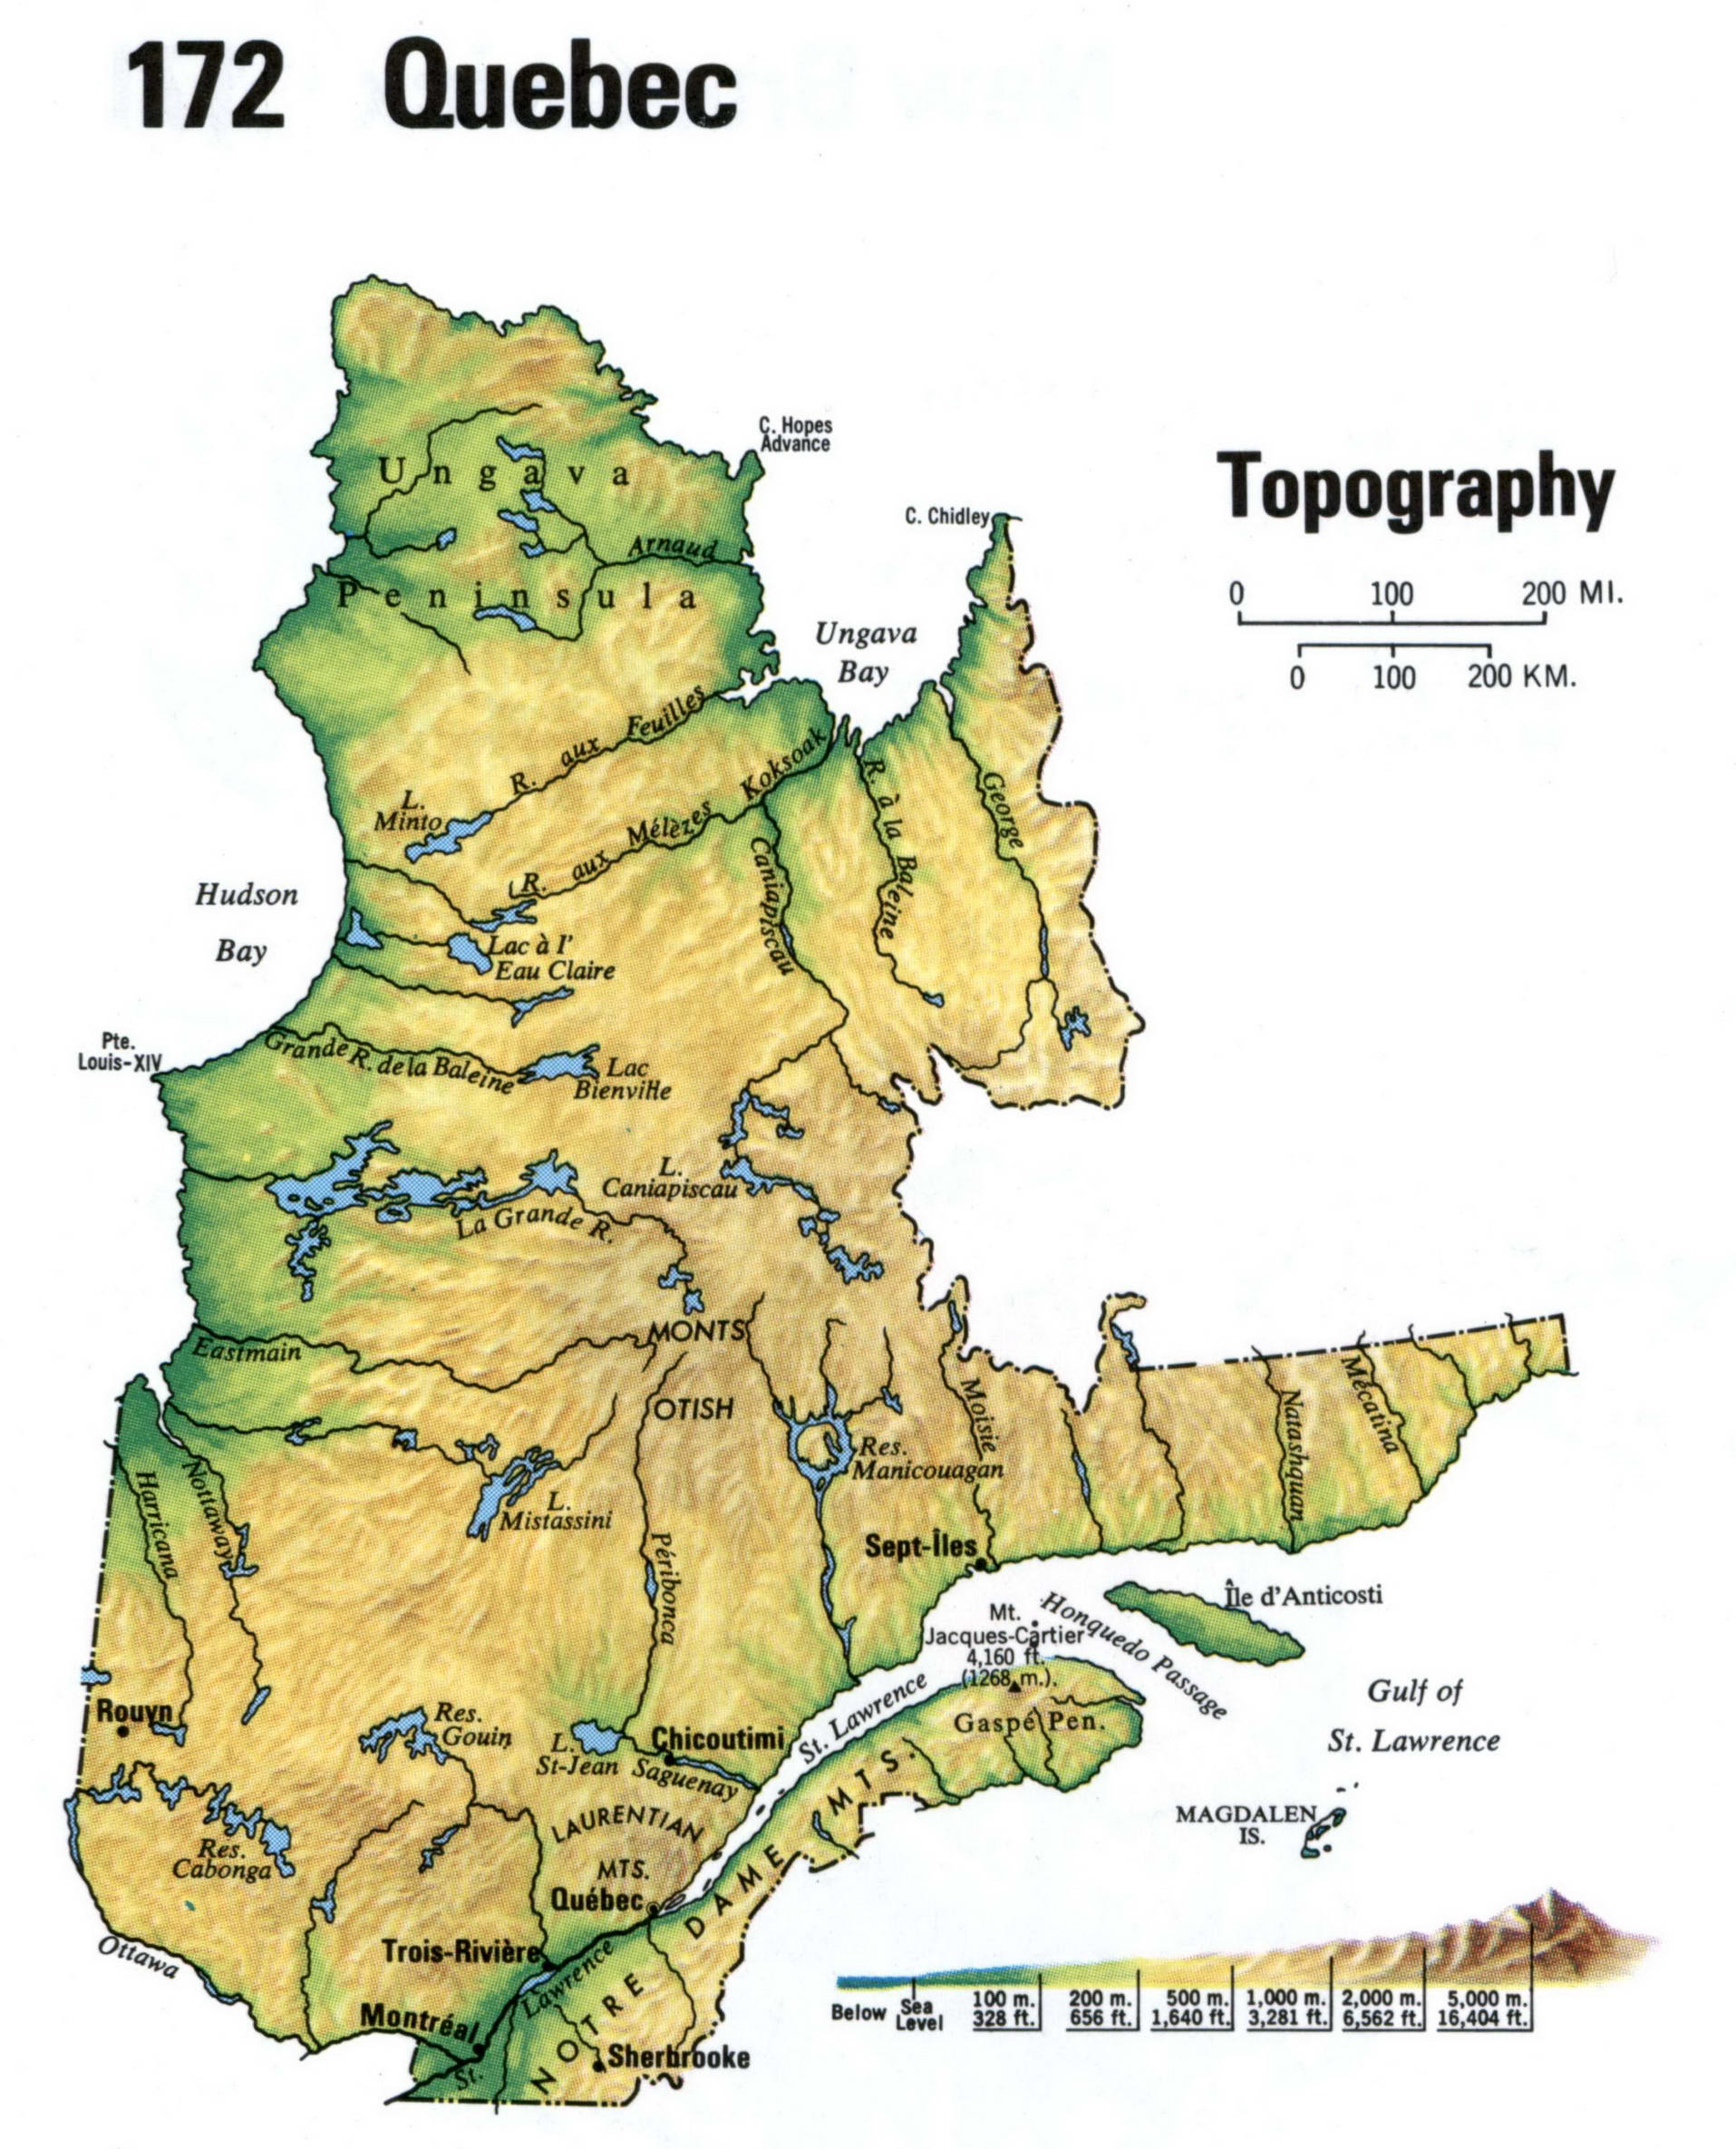 Topographic map of Quebec